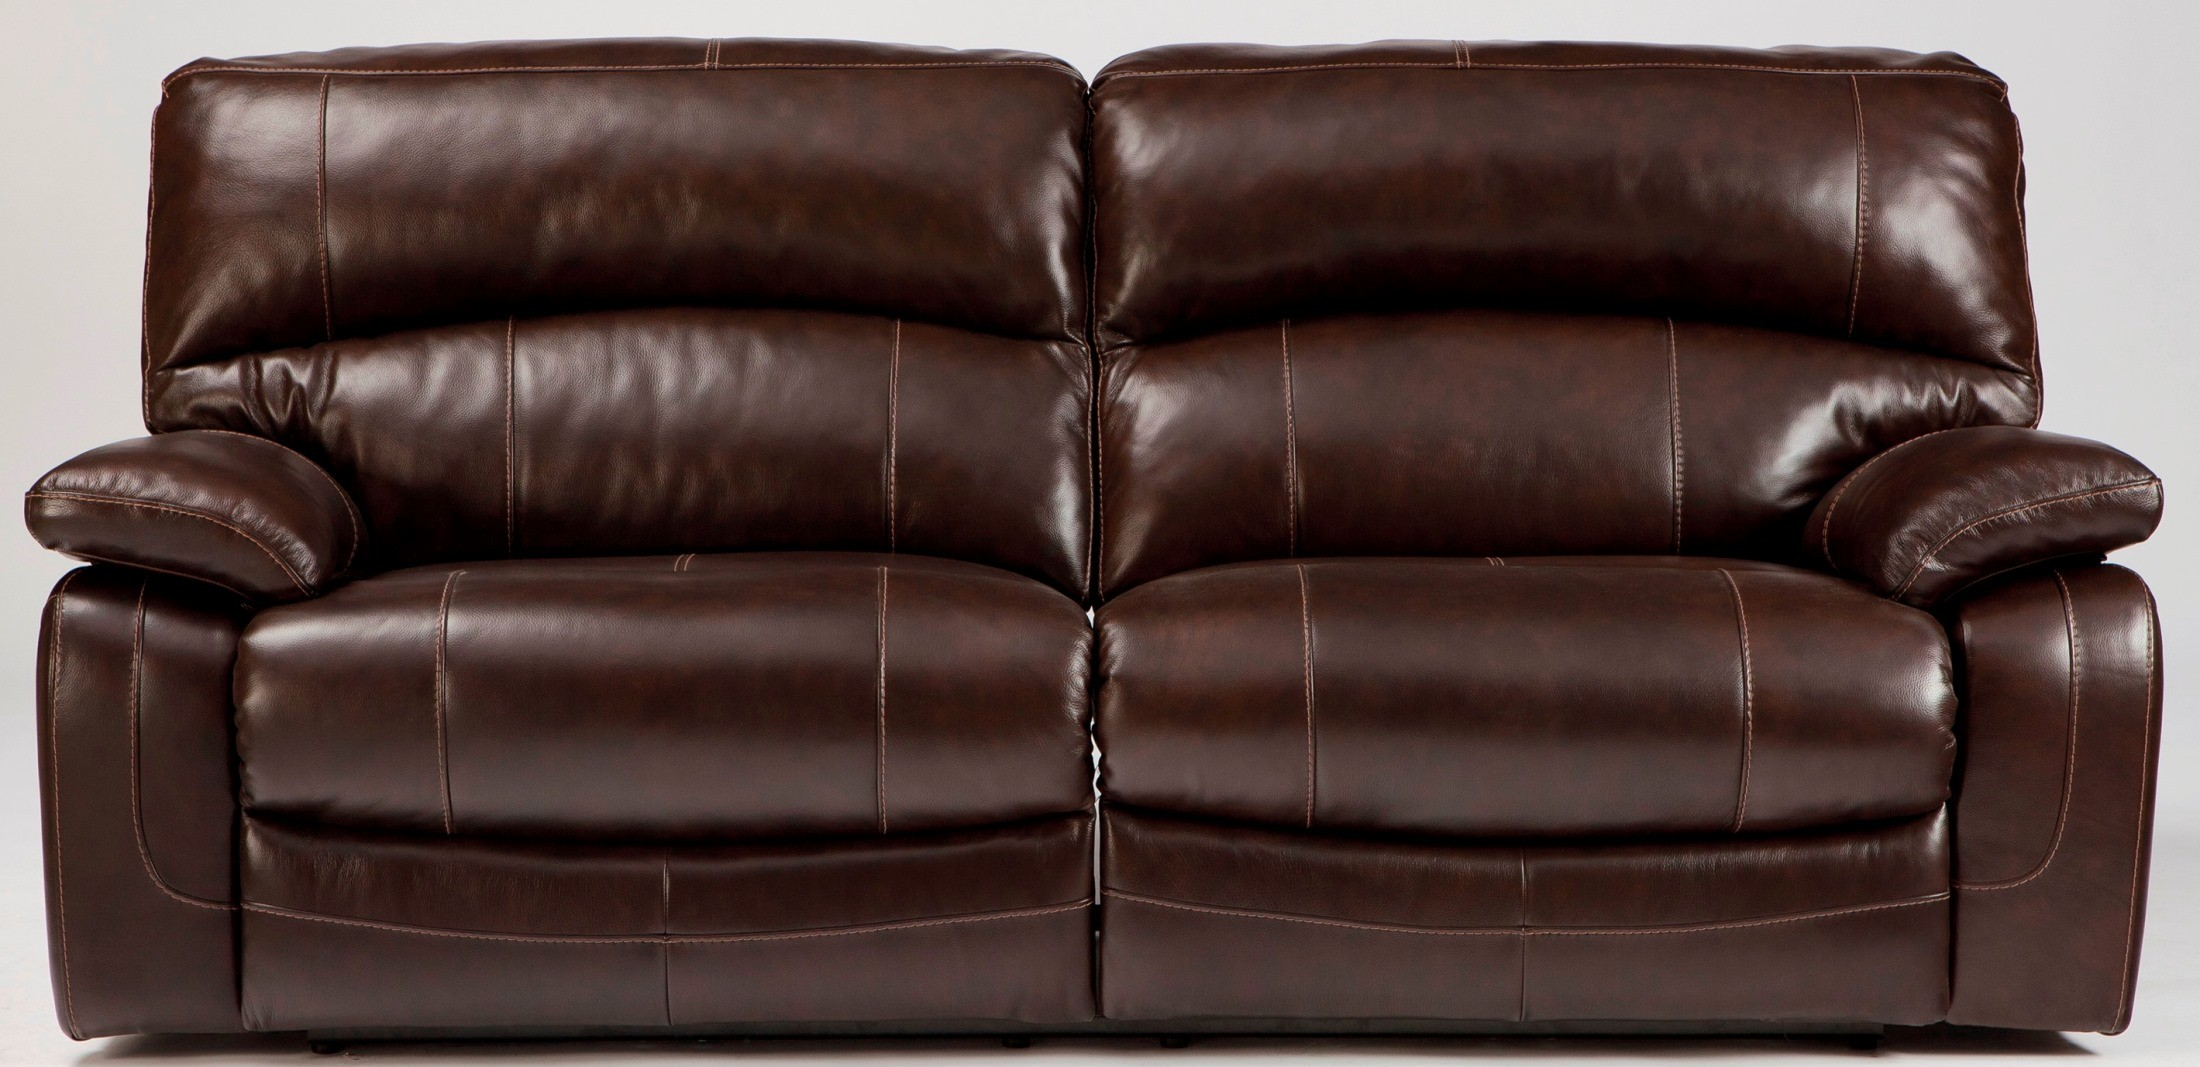 Damacio Dark Brown 2 Seat Reclining Sofa From Ashley